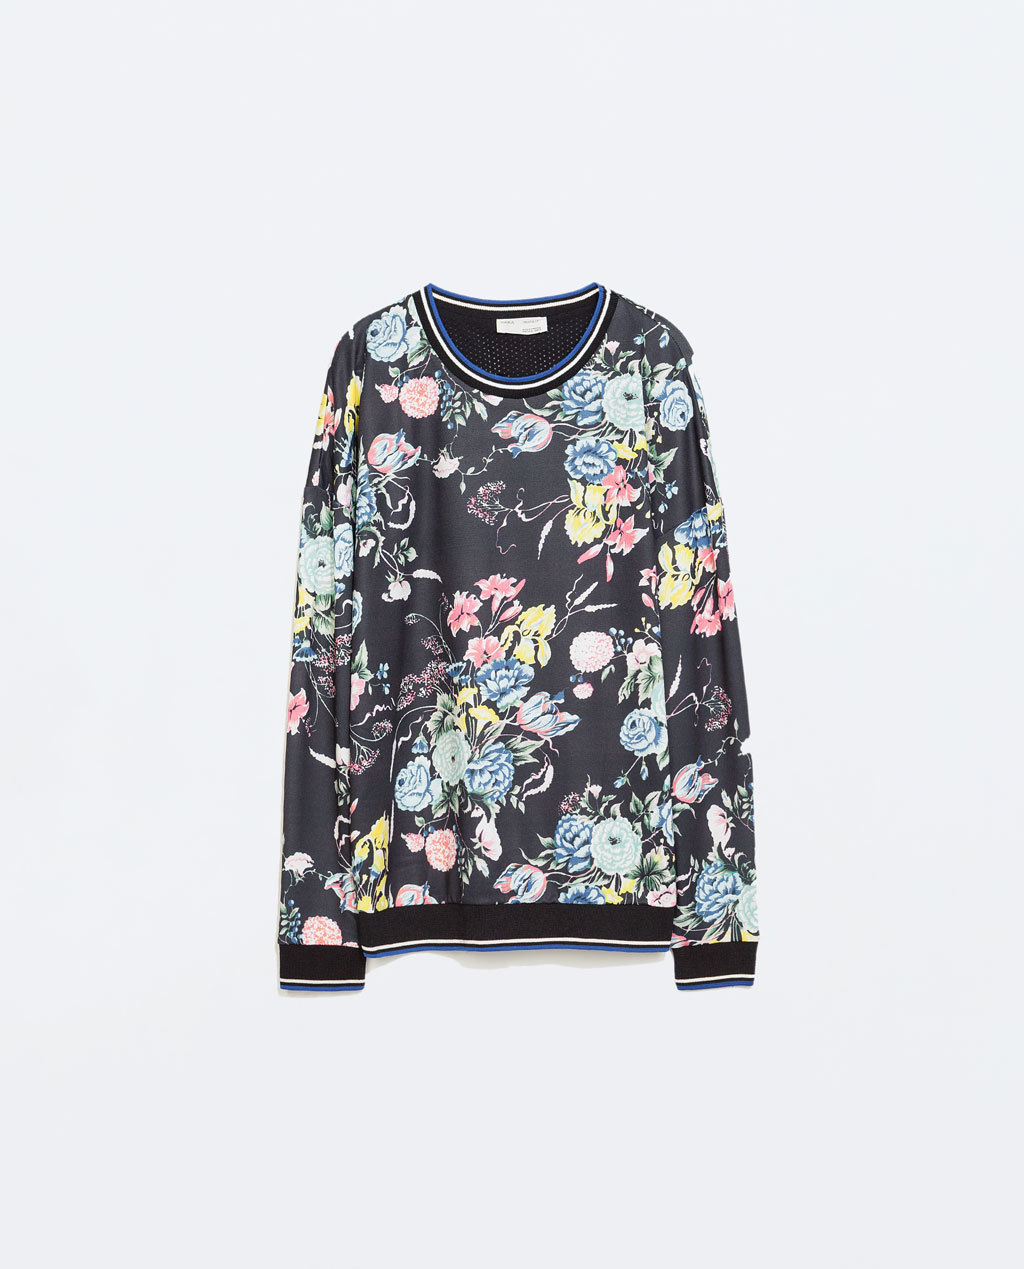 Flowers T Shirt - style: sweat top; secondary colour: black; occasions: casual, creative work; length: standard; fibres: polyester/polyamide - stretch; fit: loose; neckline: crew; predominant colour: multicoloured; sleeve length: long sleeve; sleeve style: standard; pattern type: fabric; pattern: florals; texture group: other - light to midweight; season: a/w 2014; pattern size: big & busy (top); multicoloured: multicoloured